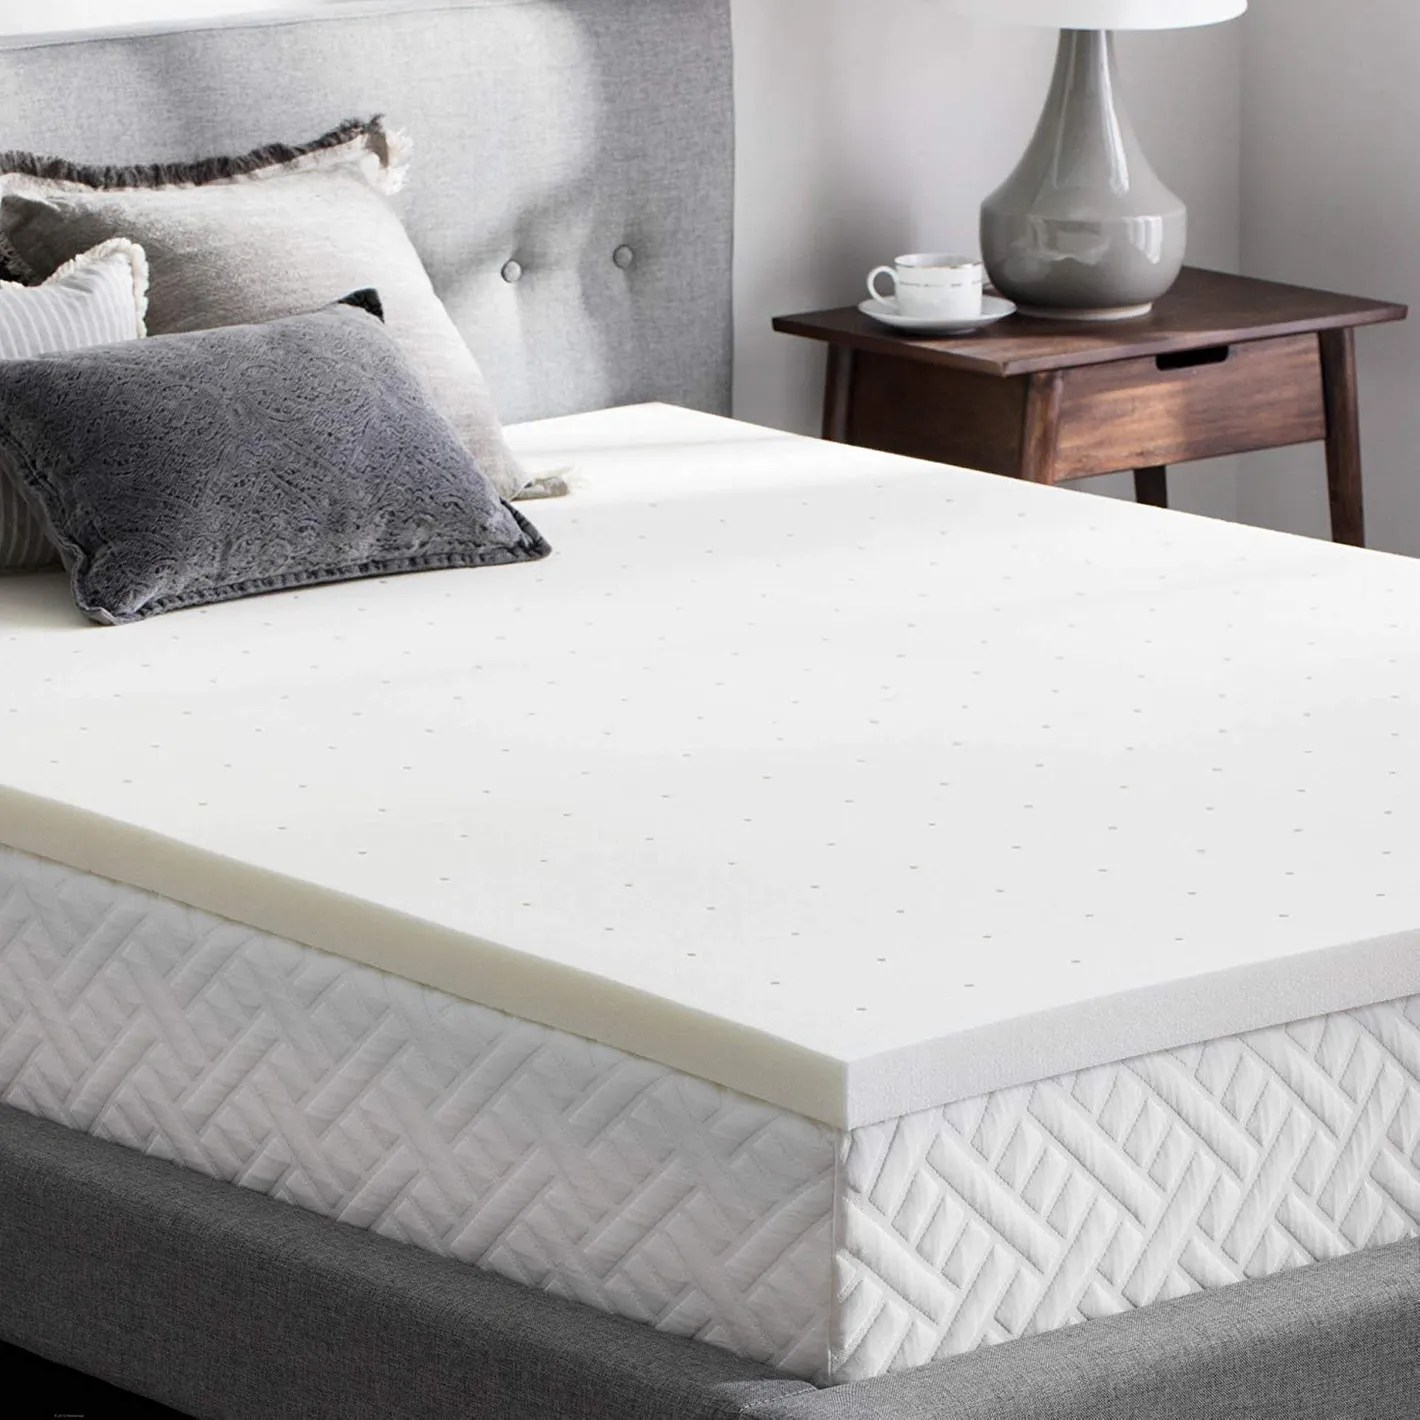 Best Foam Matress Weekender 2 Inch Memory Foam Mattress Topper